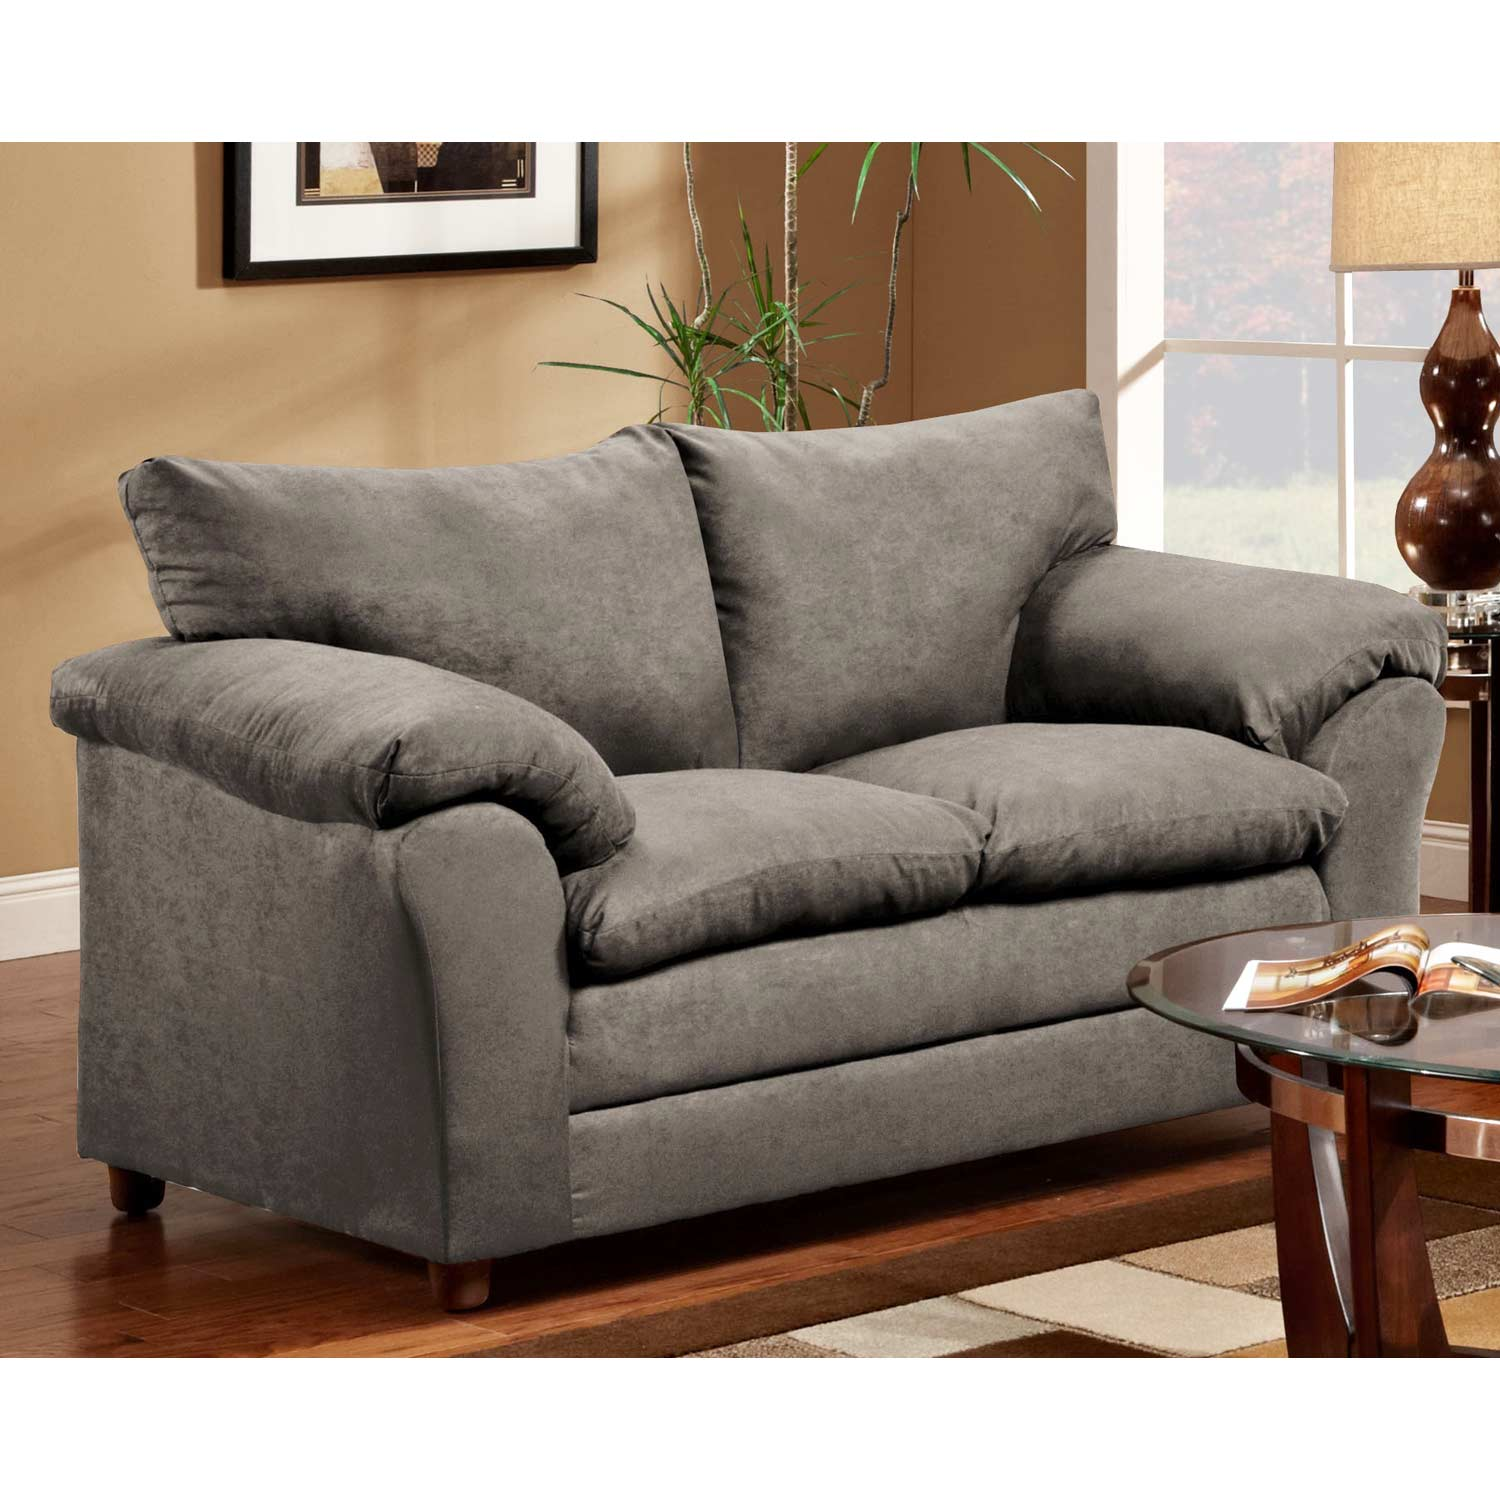 Gail Pillow Top Arm Loveseat - Flat Suede Graphite - CHF-471150-L-FG